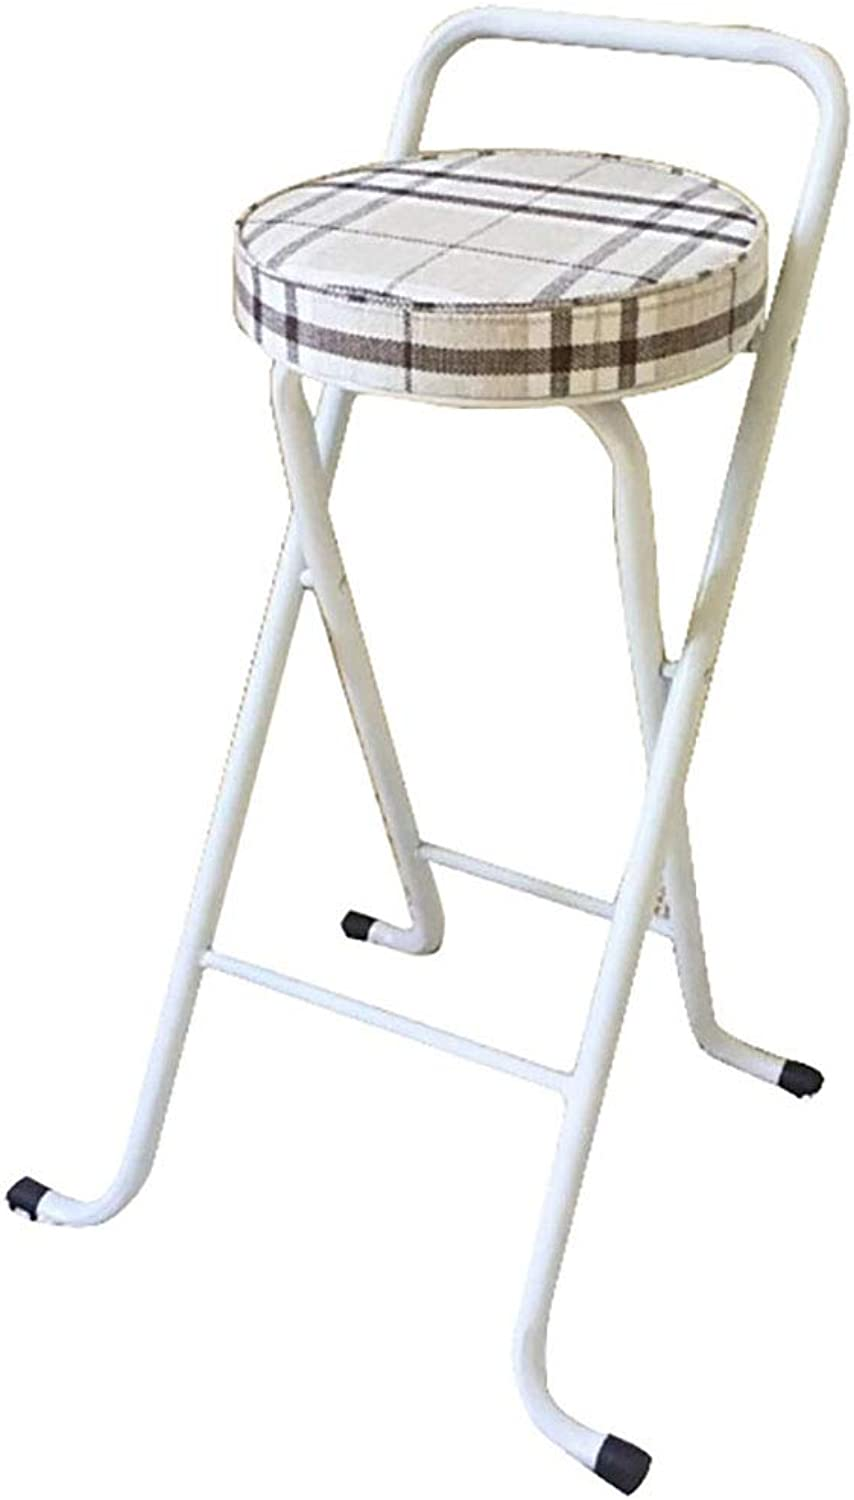 Folding Bar Stool Breakfast Padded Bar Chair Stool Kitchen Party Office Stool Seat Steel Frame Portable with Fabric Upholstered Seat